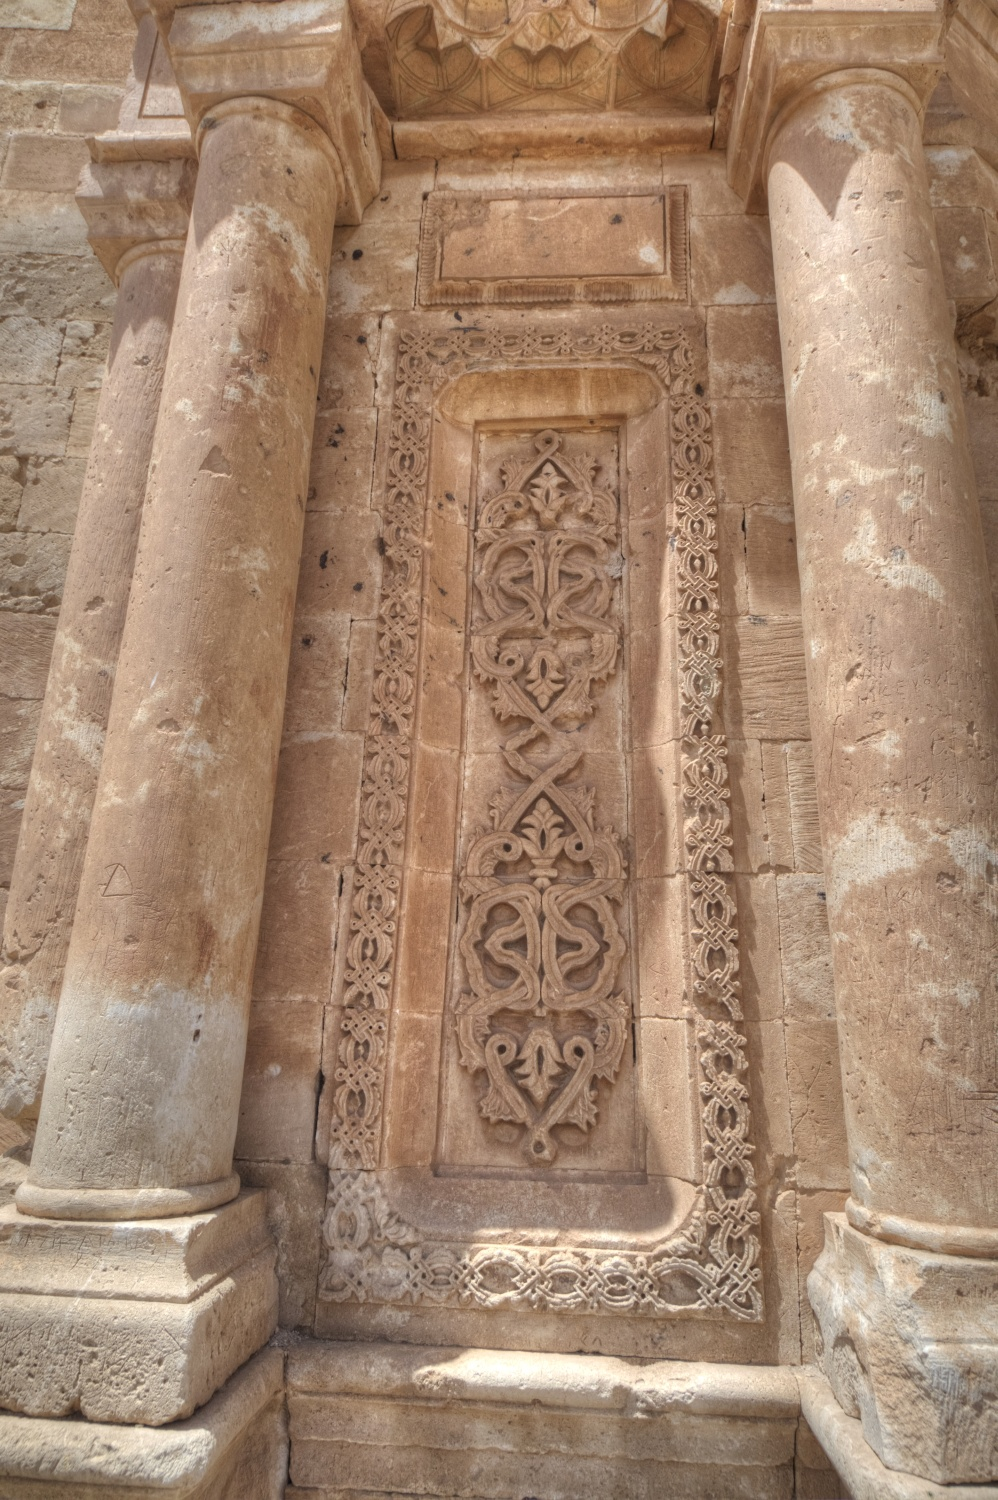 ... Ishak Pasha Palace - the entrance portal detail 52a8a12877